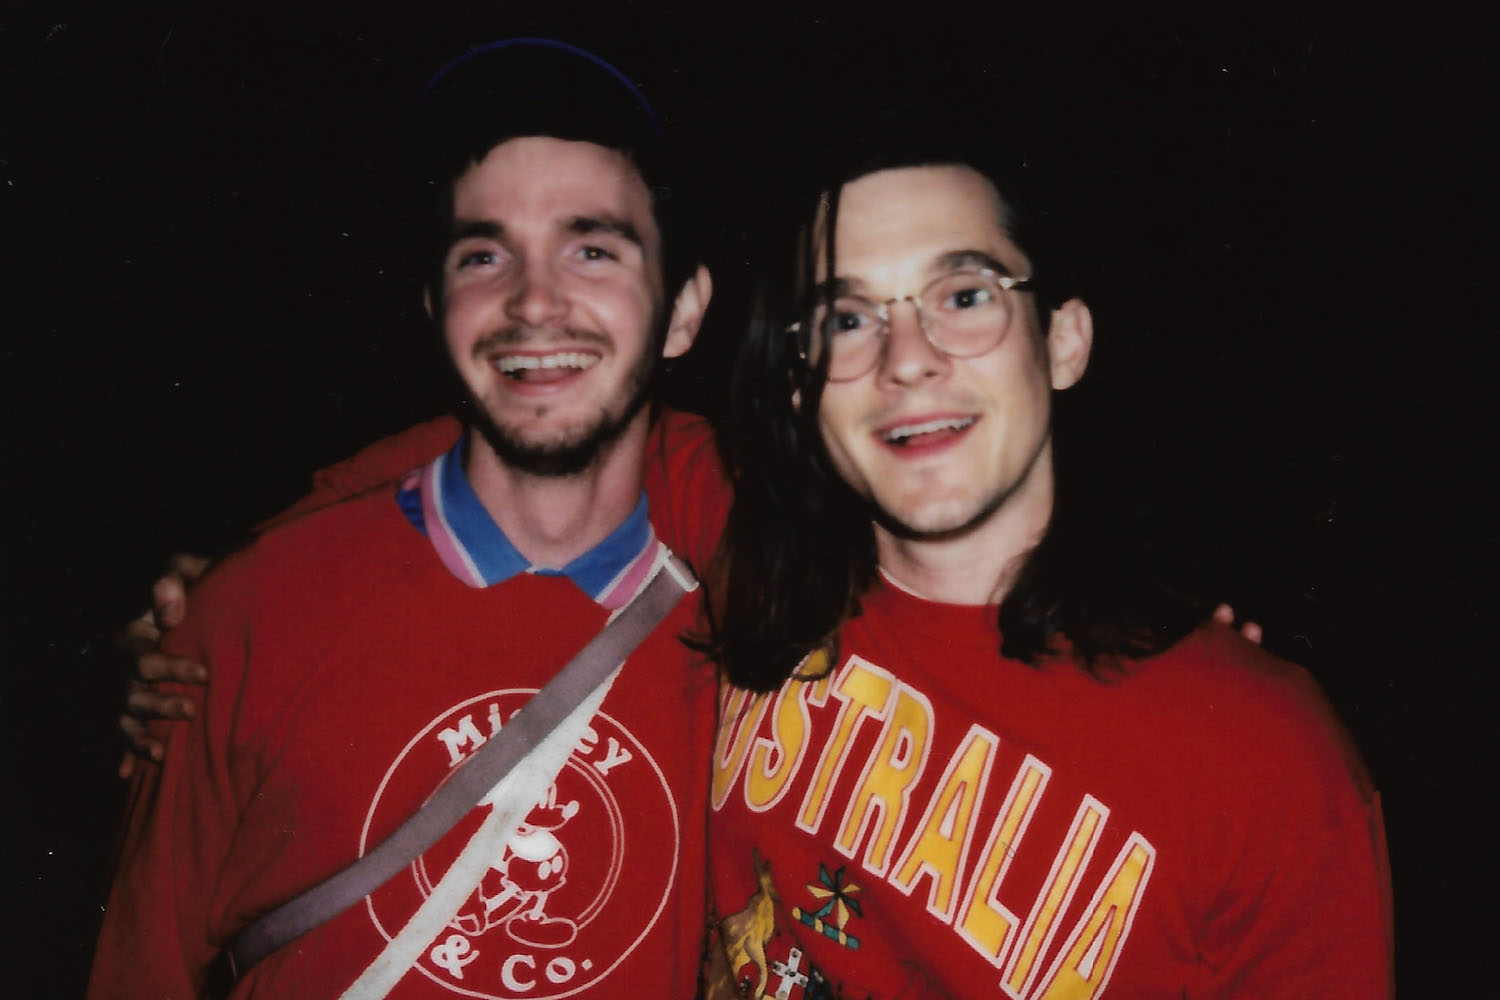 Chris Farren smiles with Tyler Broderick of Diners, who wears a Micky Mouse sweatshirt gifted to him by Chris.